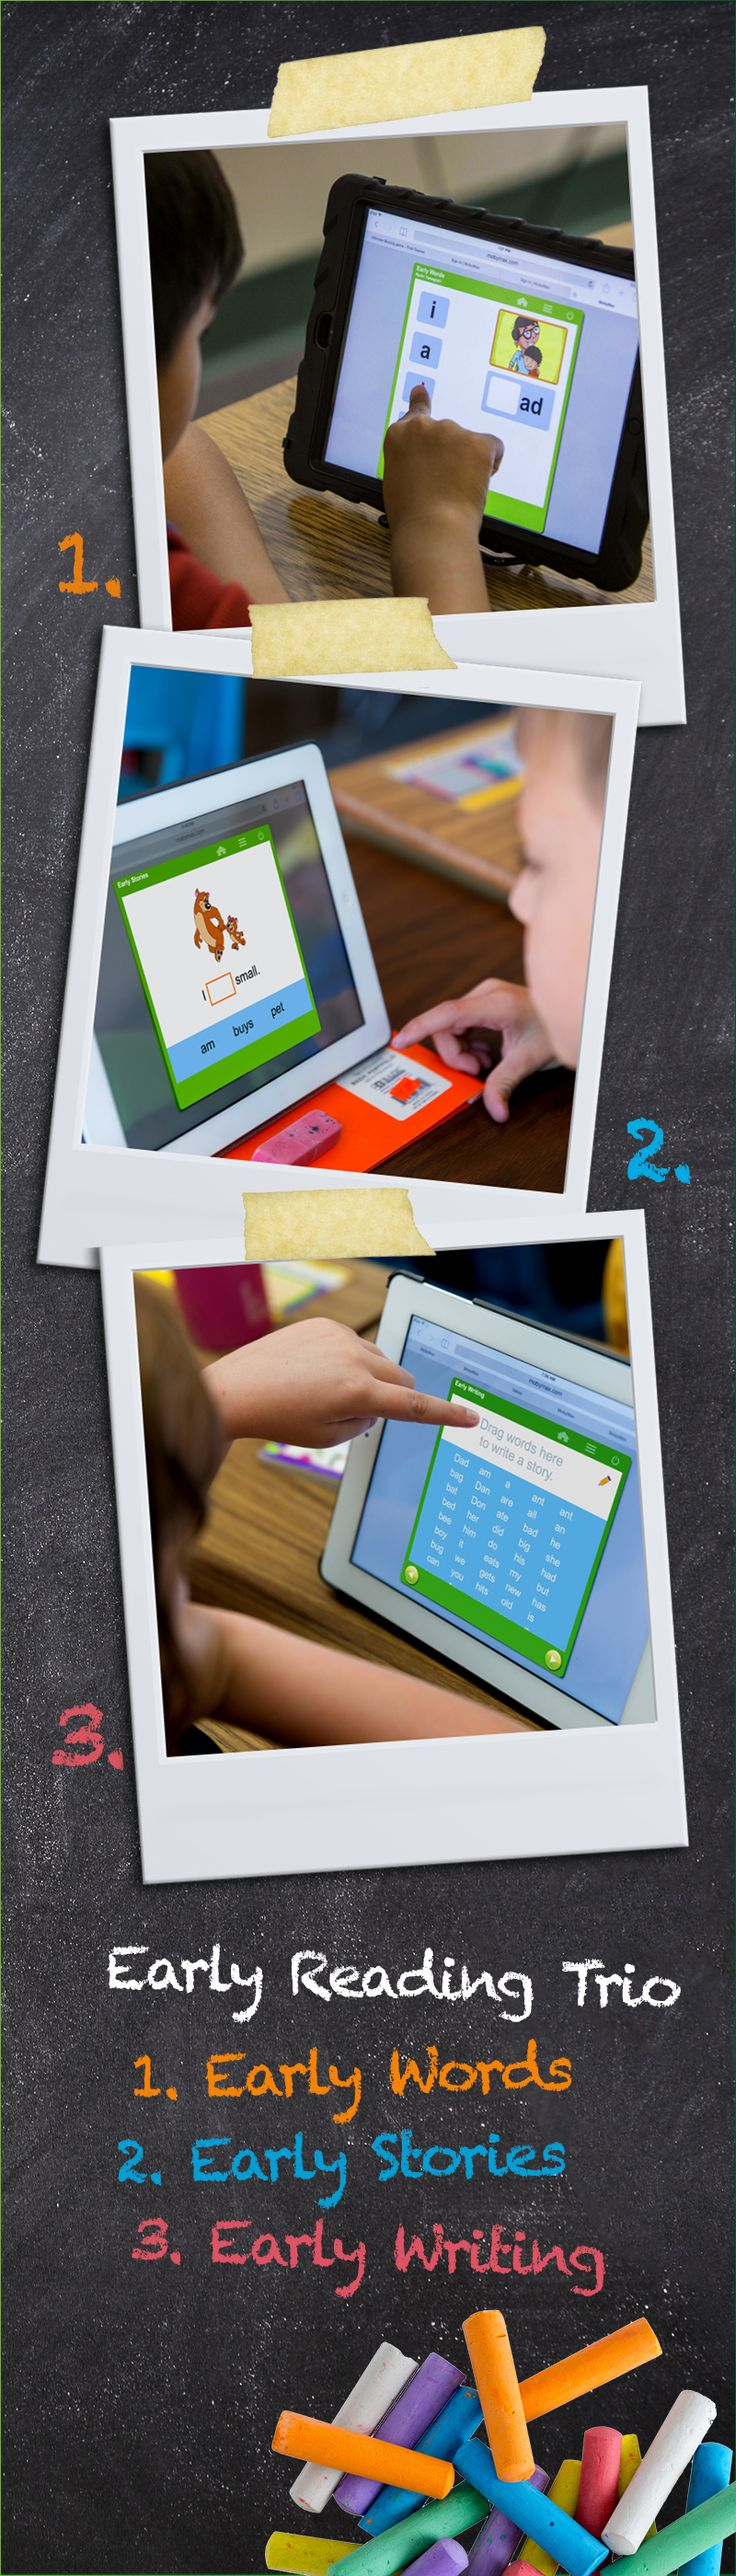 Moby max math log in - Mobymax Early Reading Trio Curriculum For K 8 Schools Free Touch Curriculum Builds